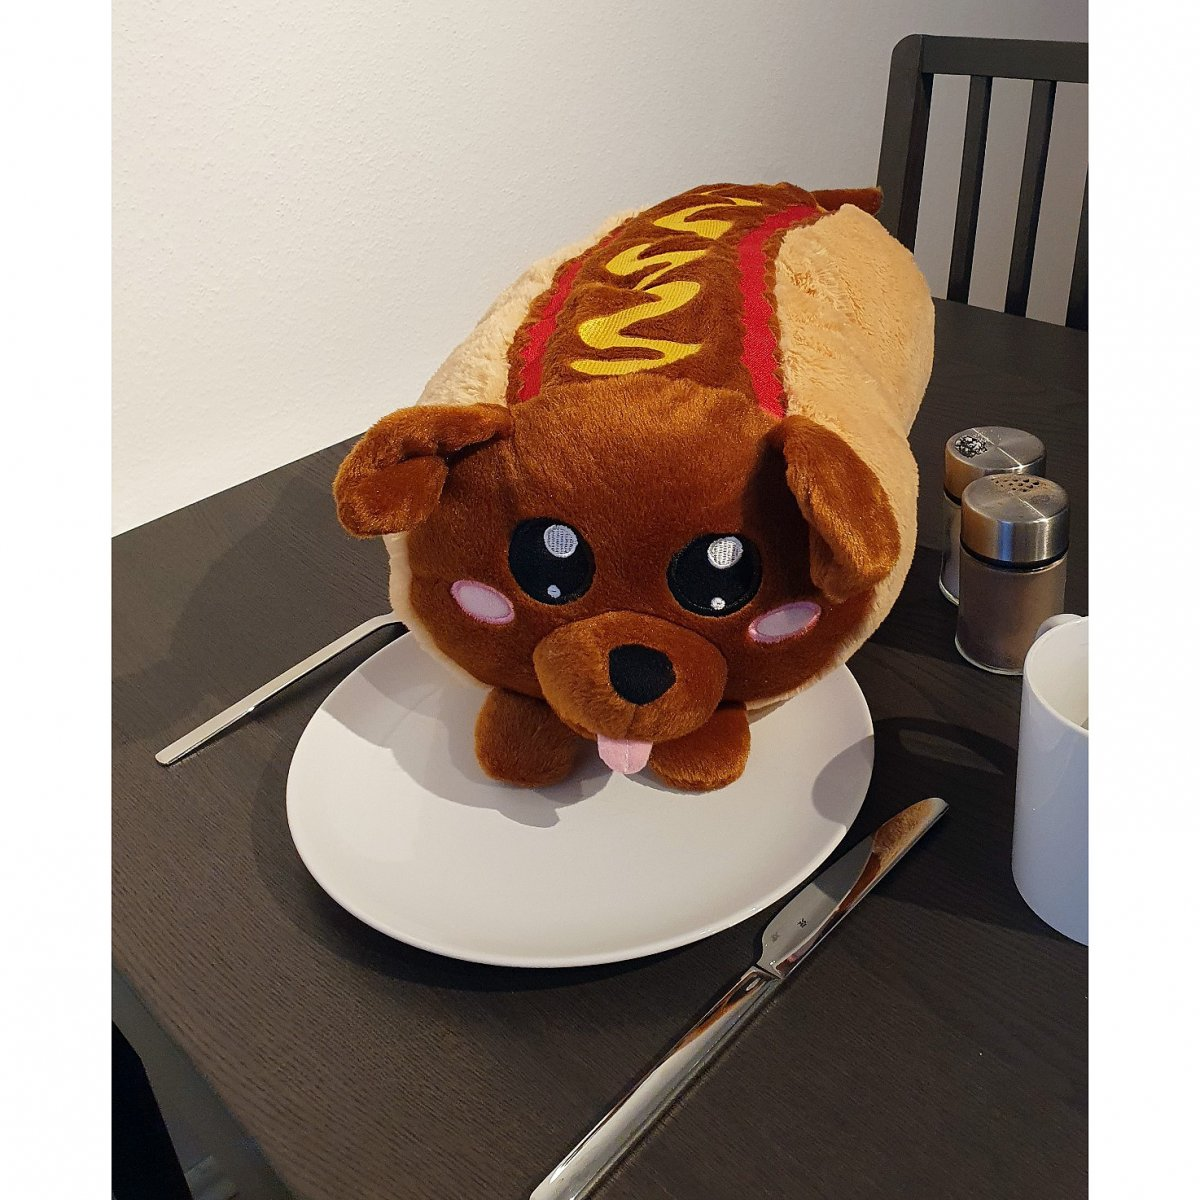 Hotdog Plush Fastfood Toy Emoticon Pillow Snack